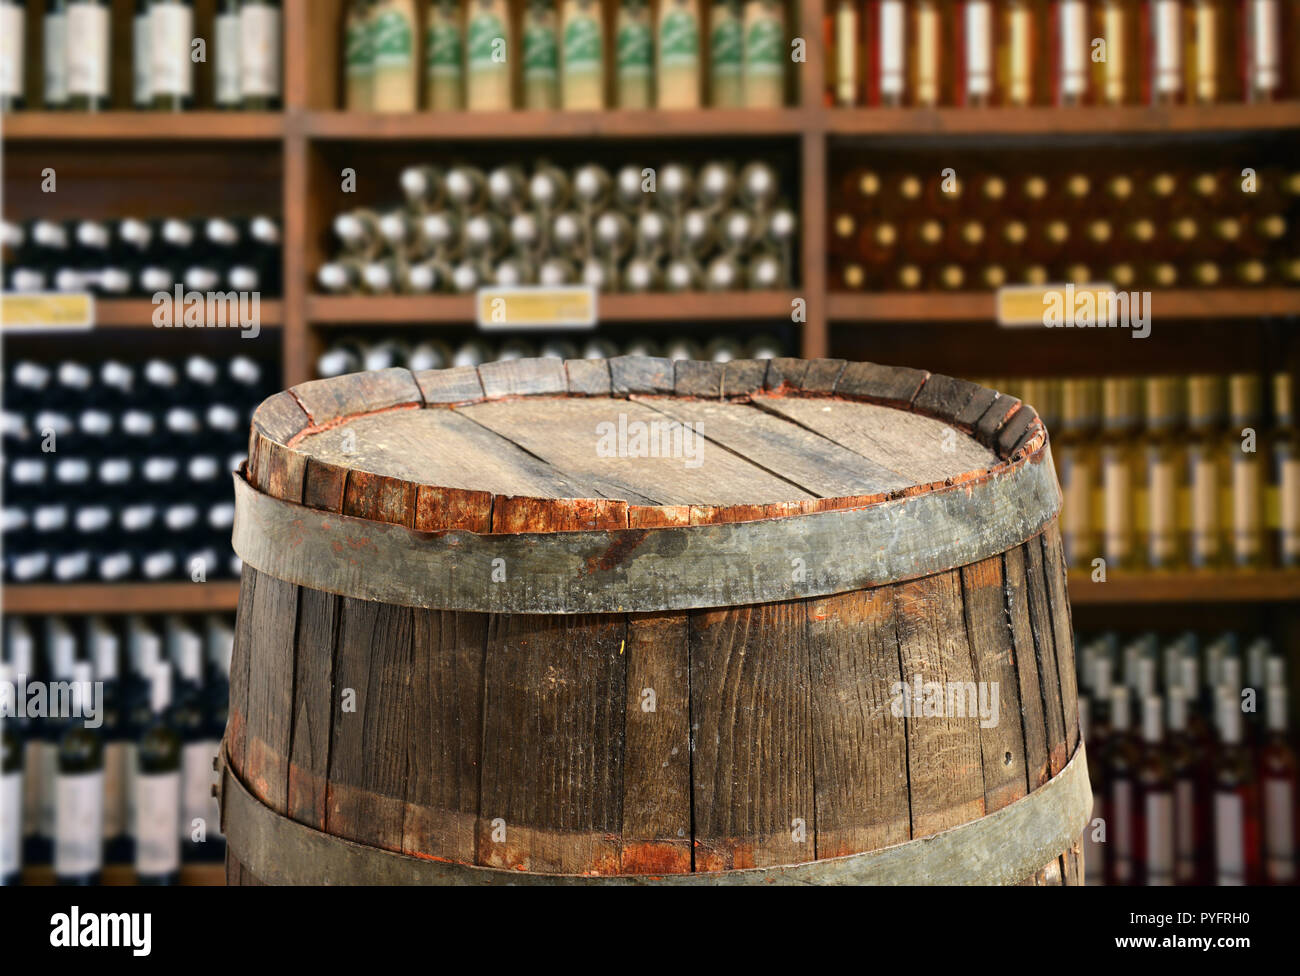 empty barrel for product display monateges - Stock Image